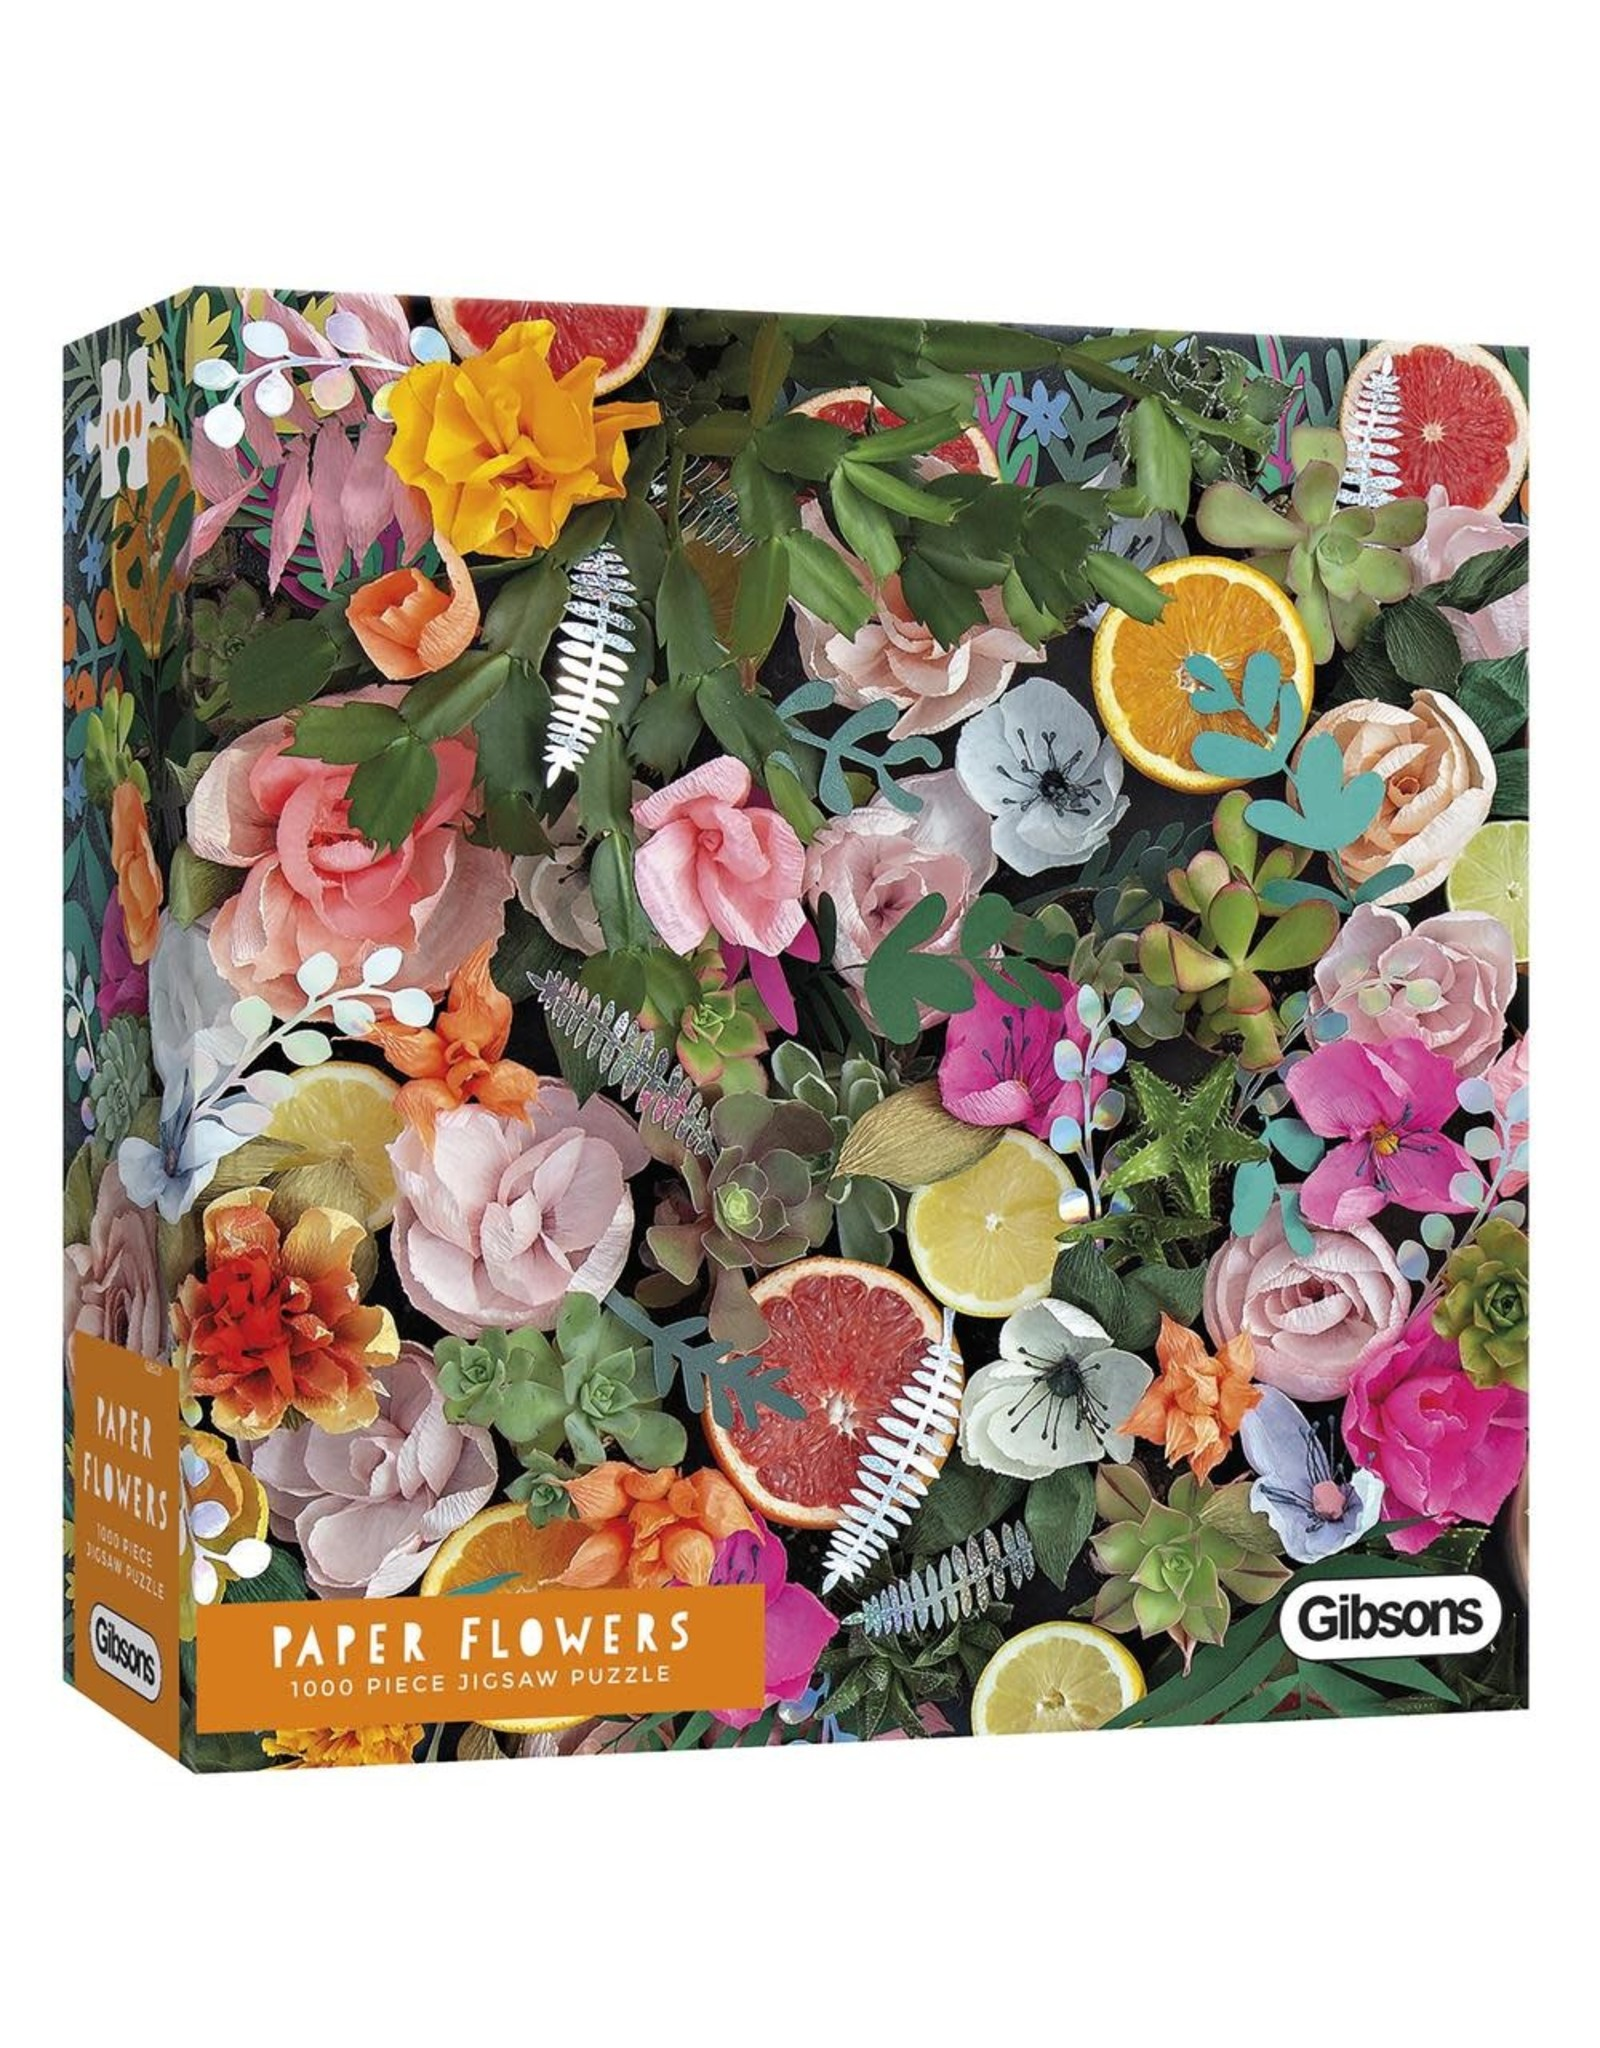 Gibsons 1000PC PUZZLE: PAPER FLOWERS